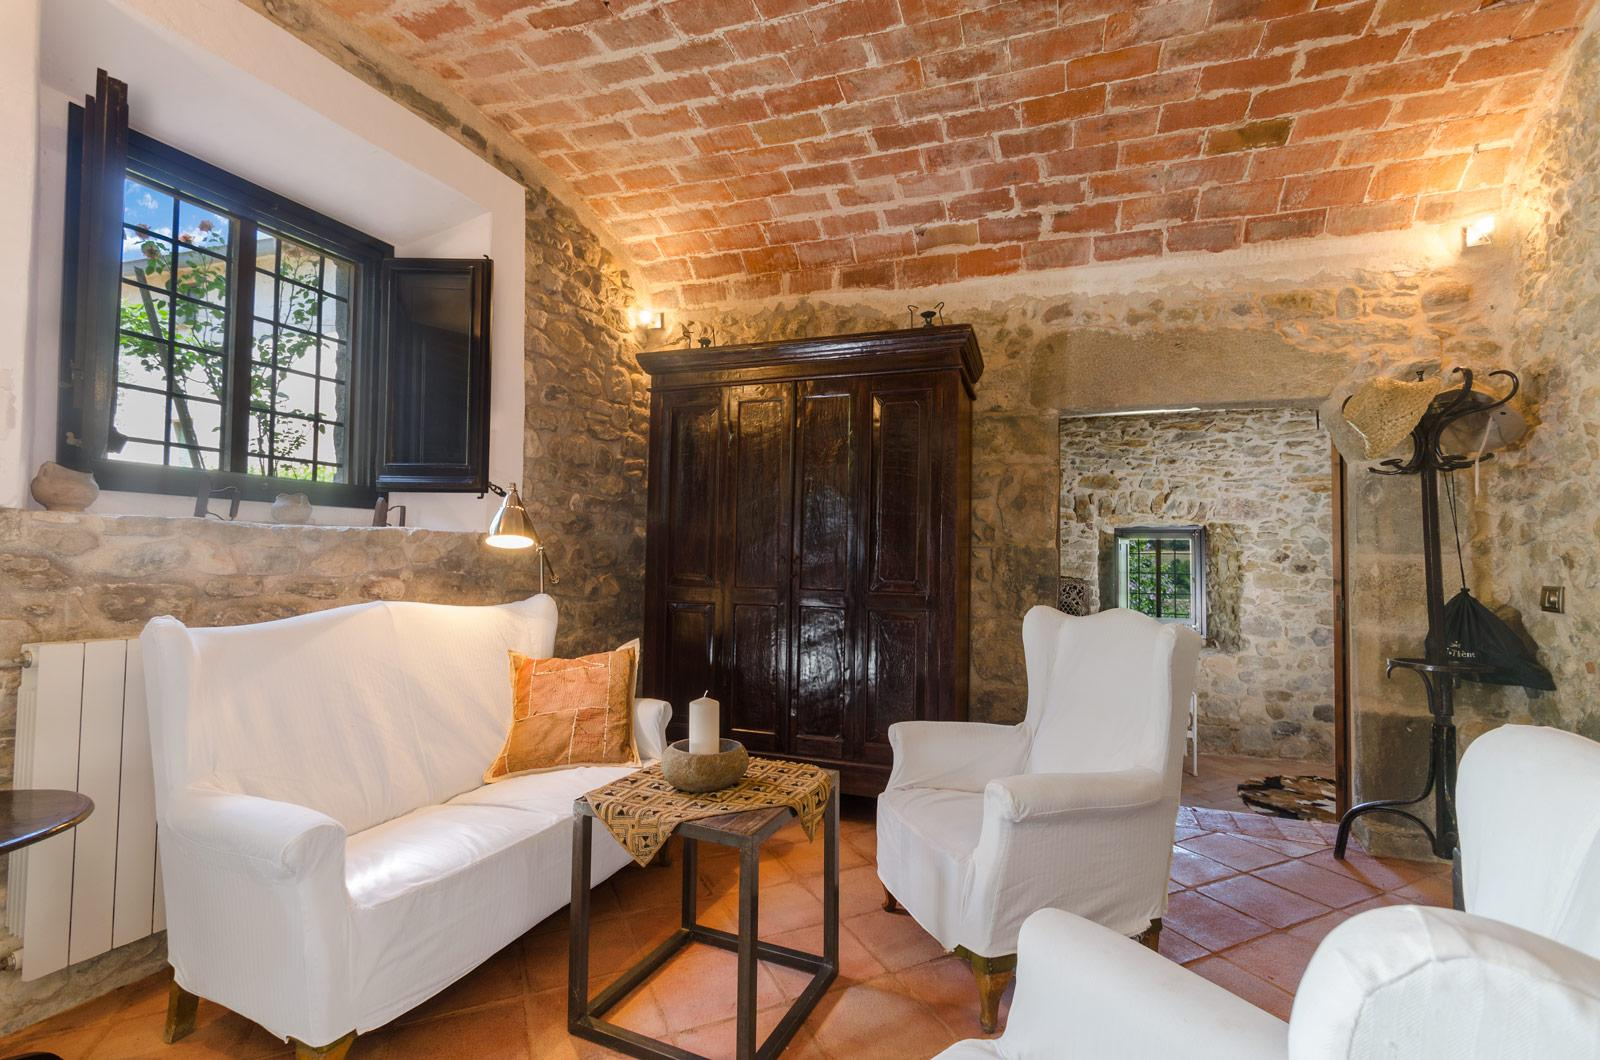 13. Villa for sale in Girona - Traditional Masia, Catalonia country house, for sale in Girona